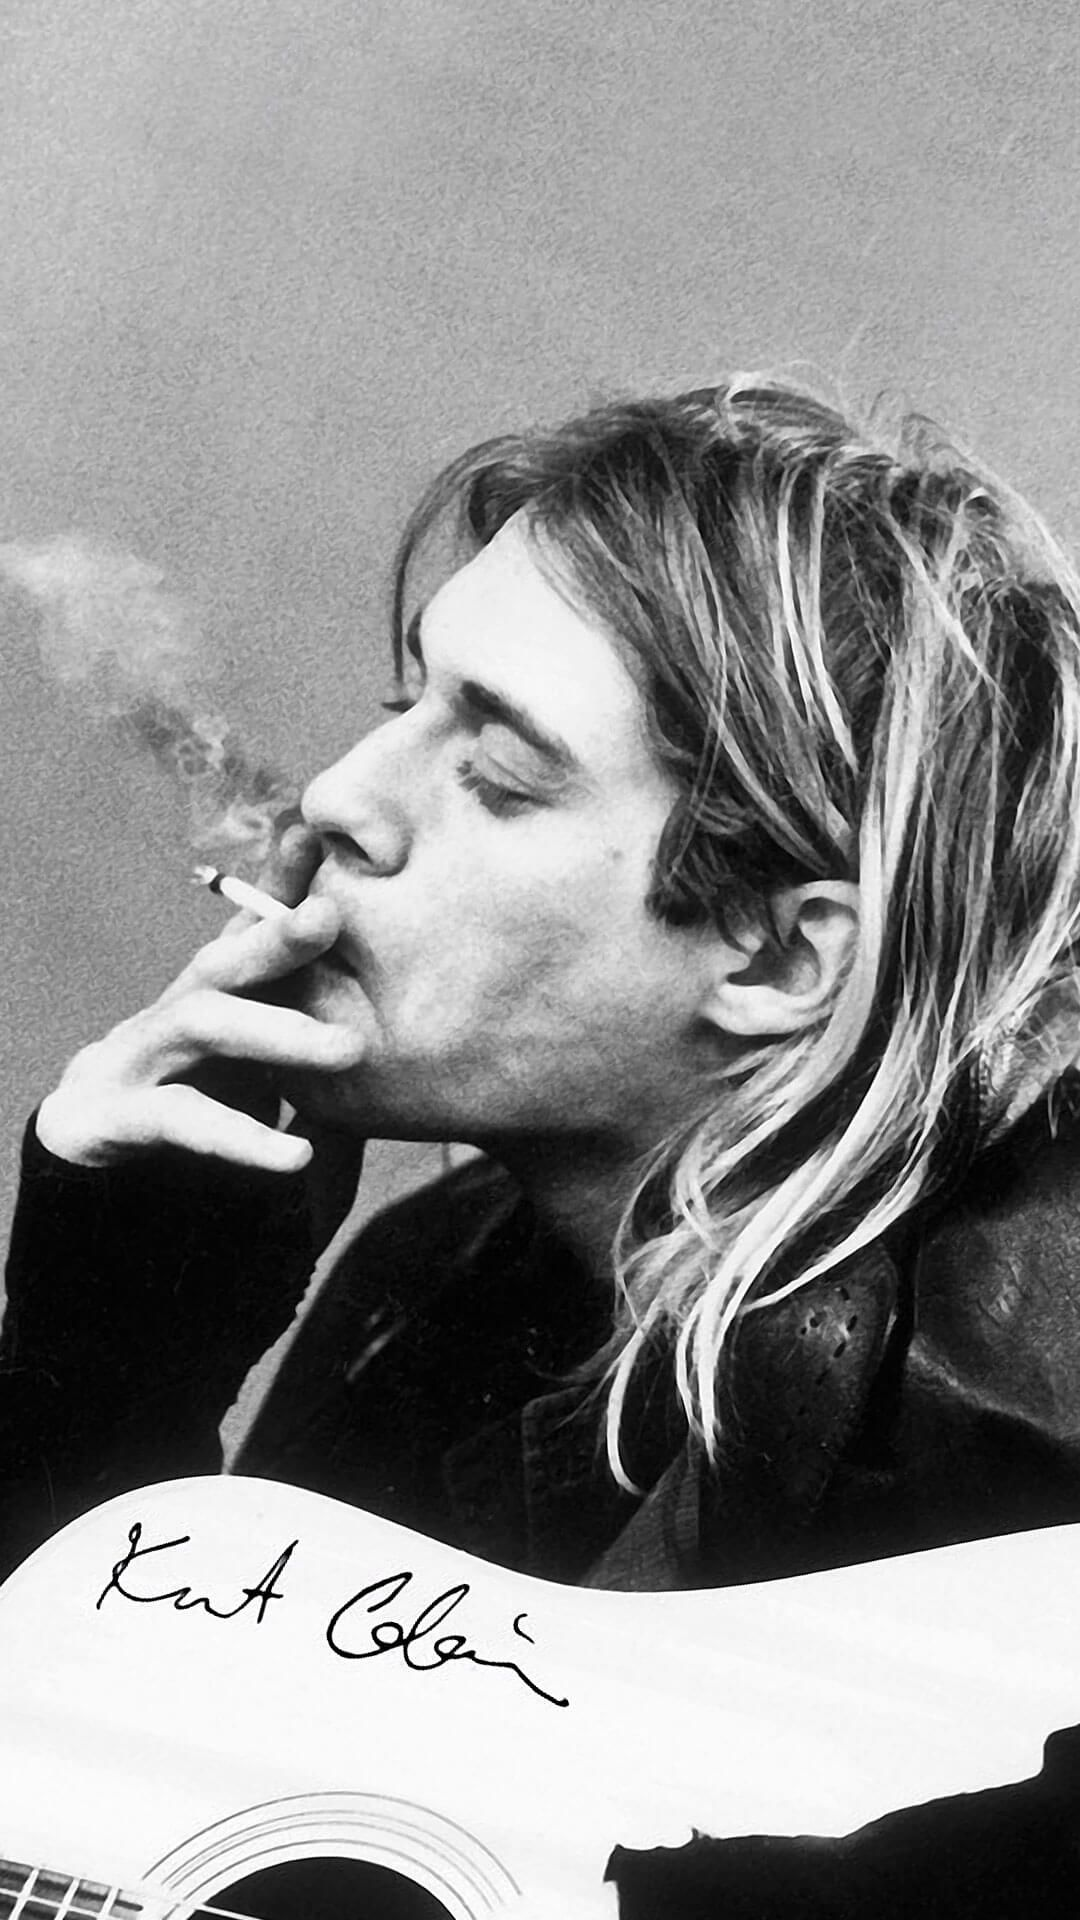 Kurt Cobain Wallpapers For Iphone 6 Hd In 2019 Nirvana